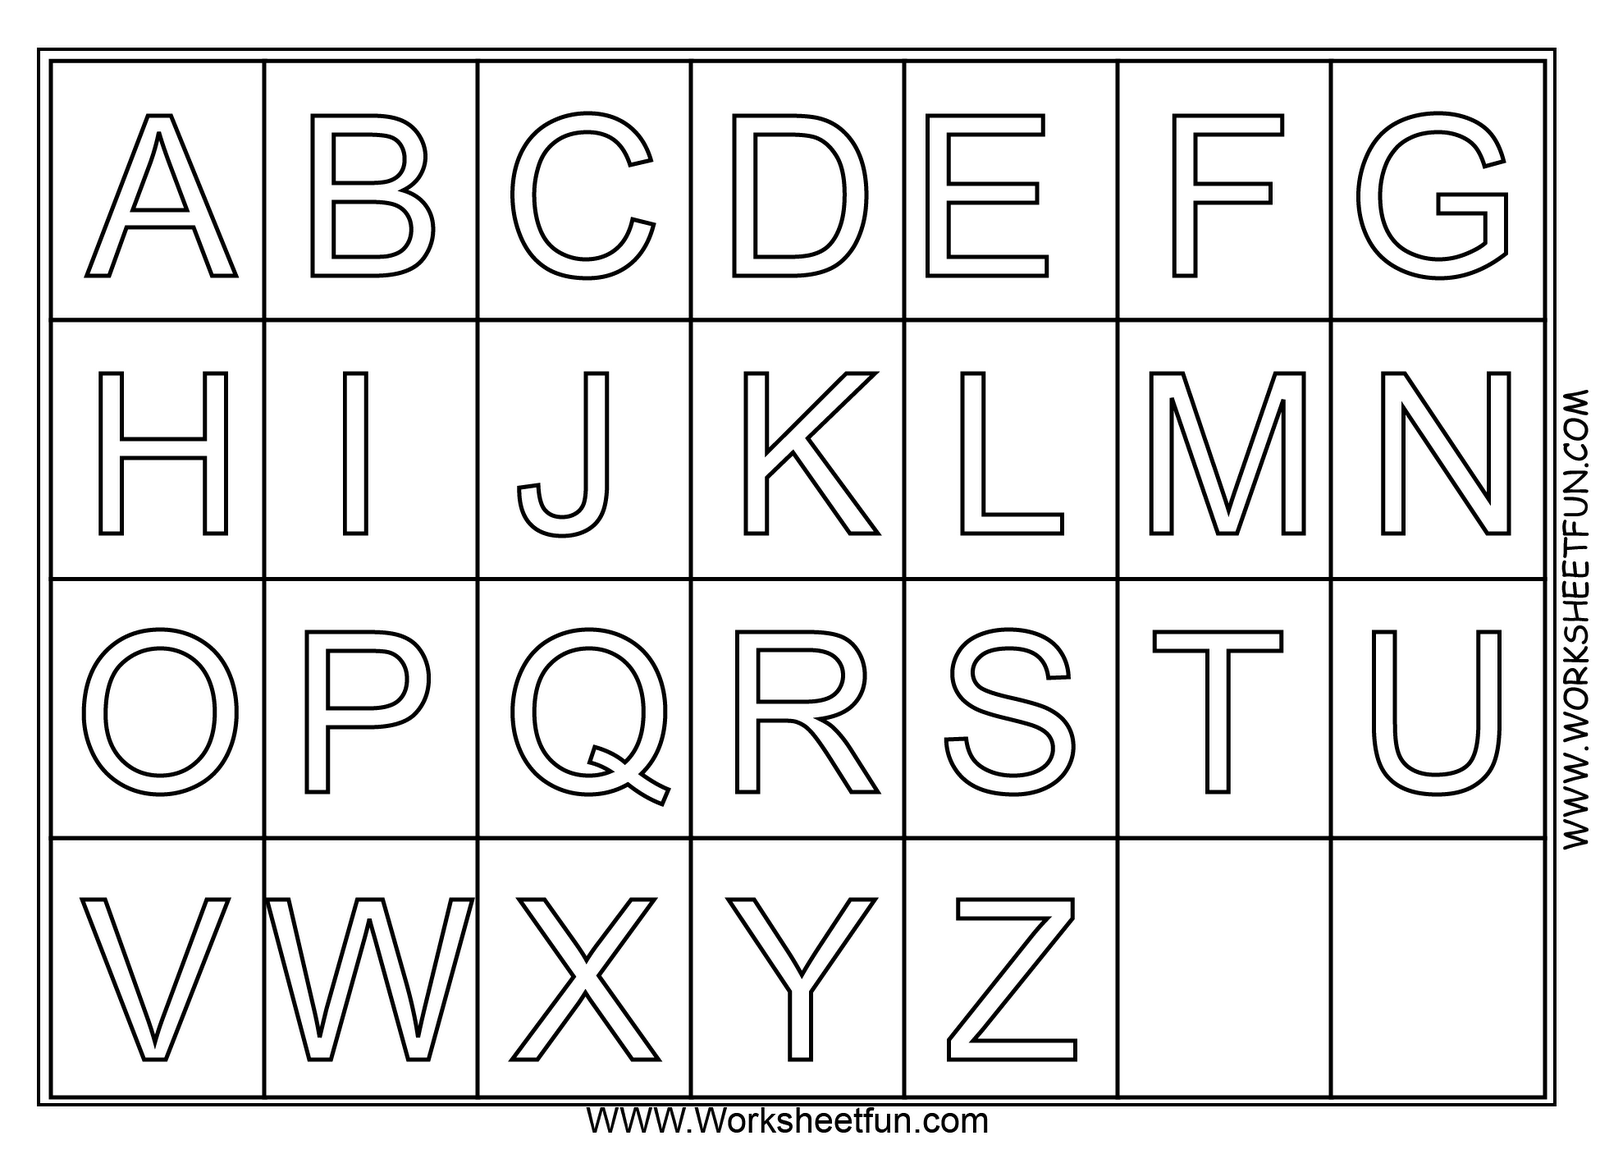 Worksheets Free Printable Alphabet Worksheets A-z a z alphabet coloring pages download and print for free pre k worksheets